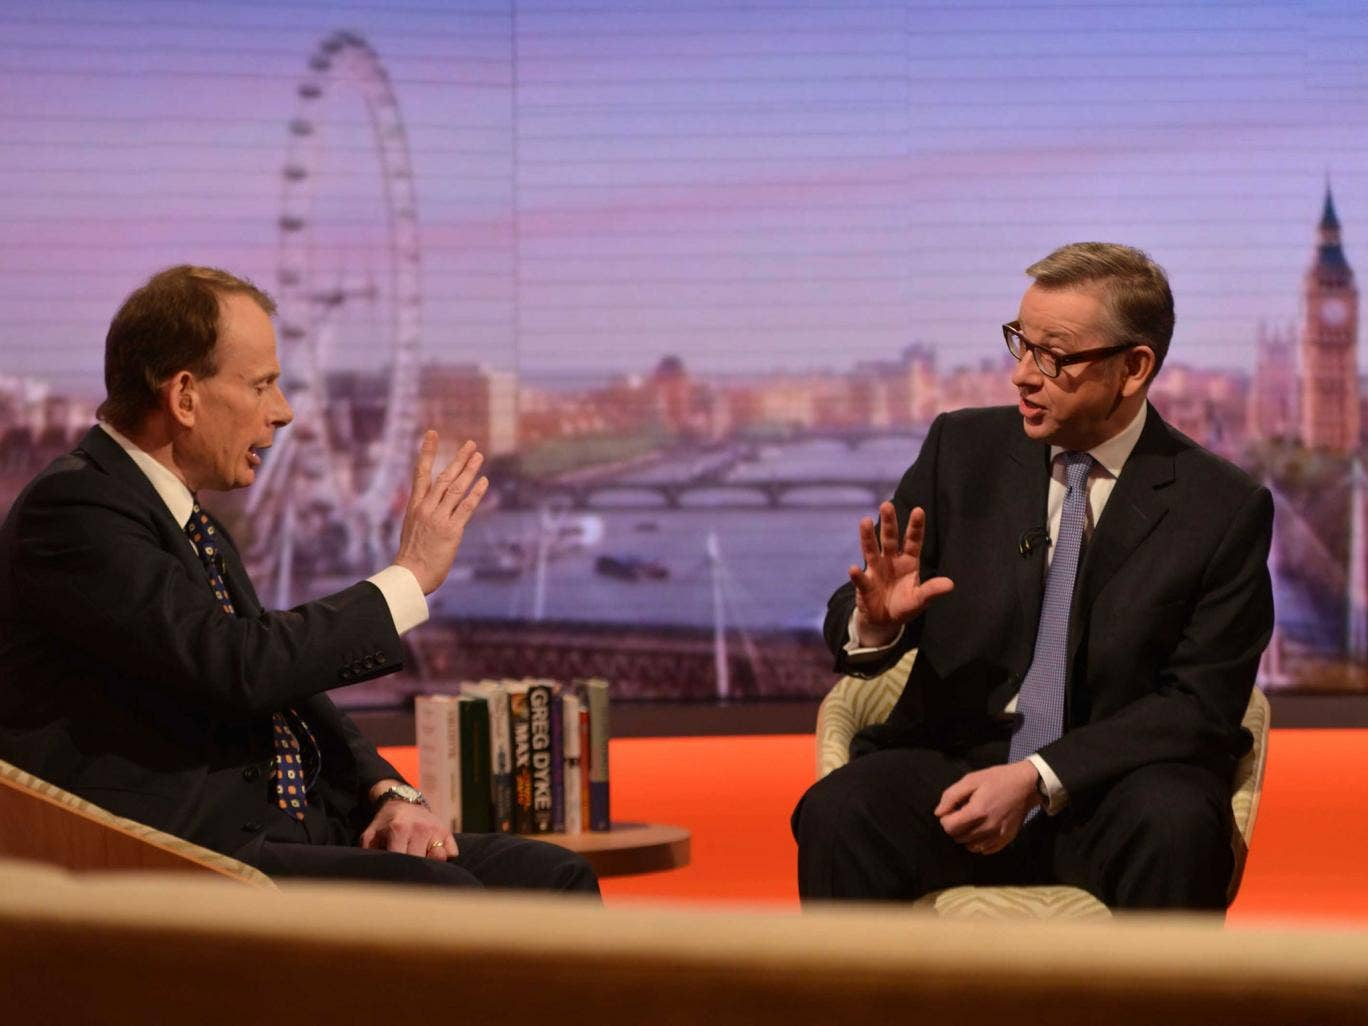 Michael Gove tells Andrew Marr that Lady Morgan was not removed for political reasons